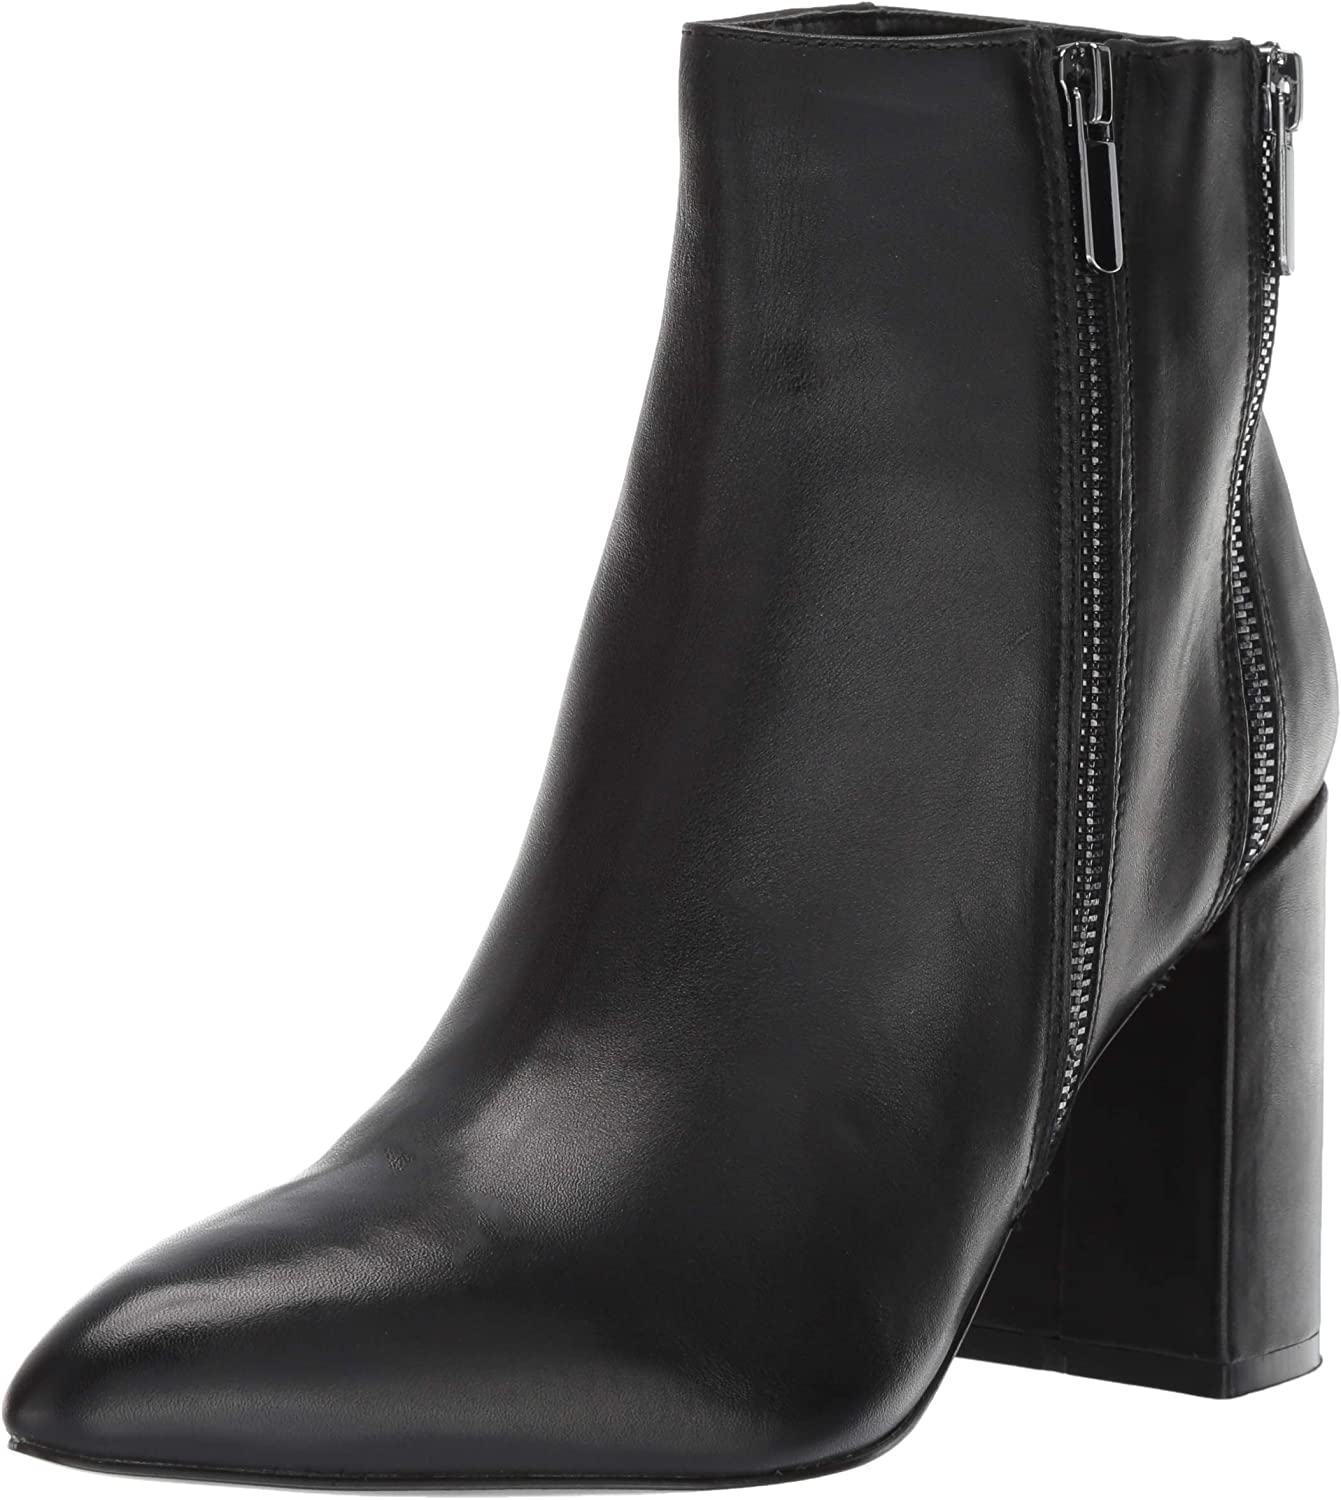 Fergie Women's trust Enigma Ankle 67% OFF of fixed price Boot